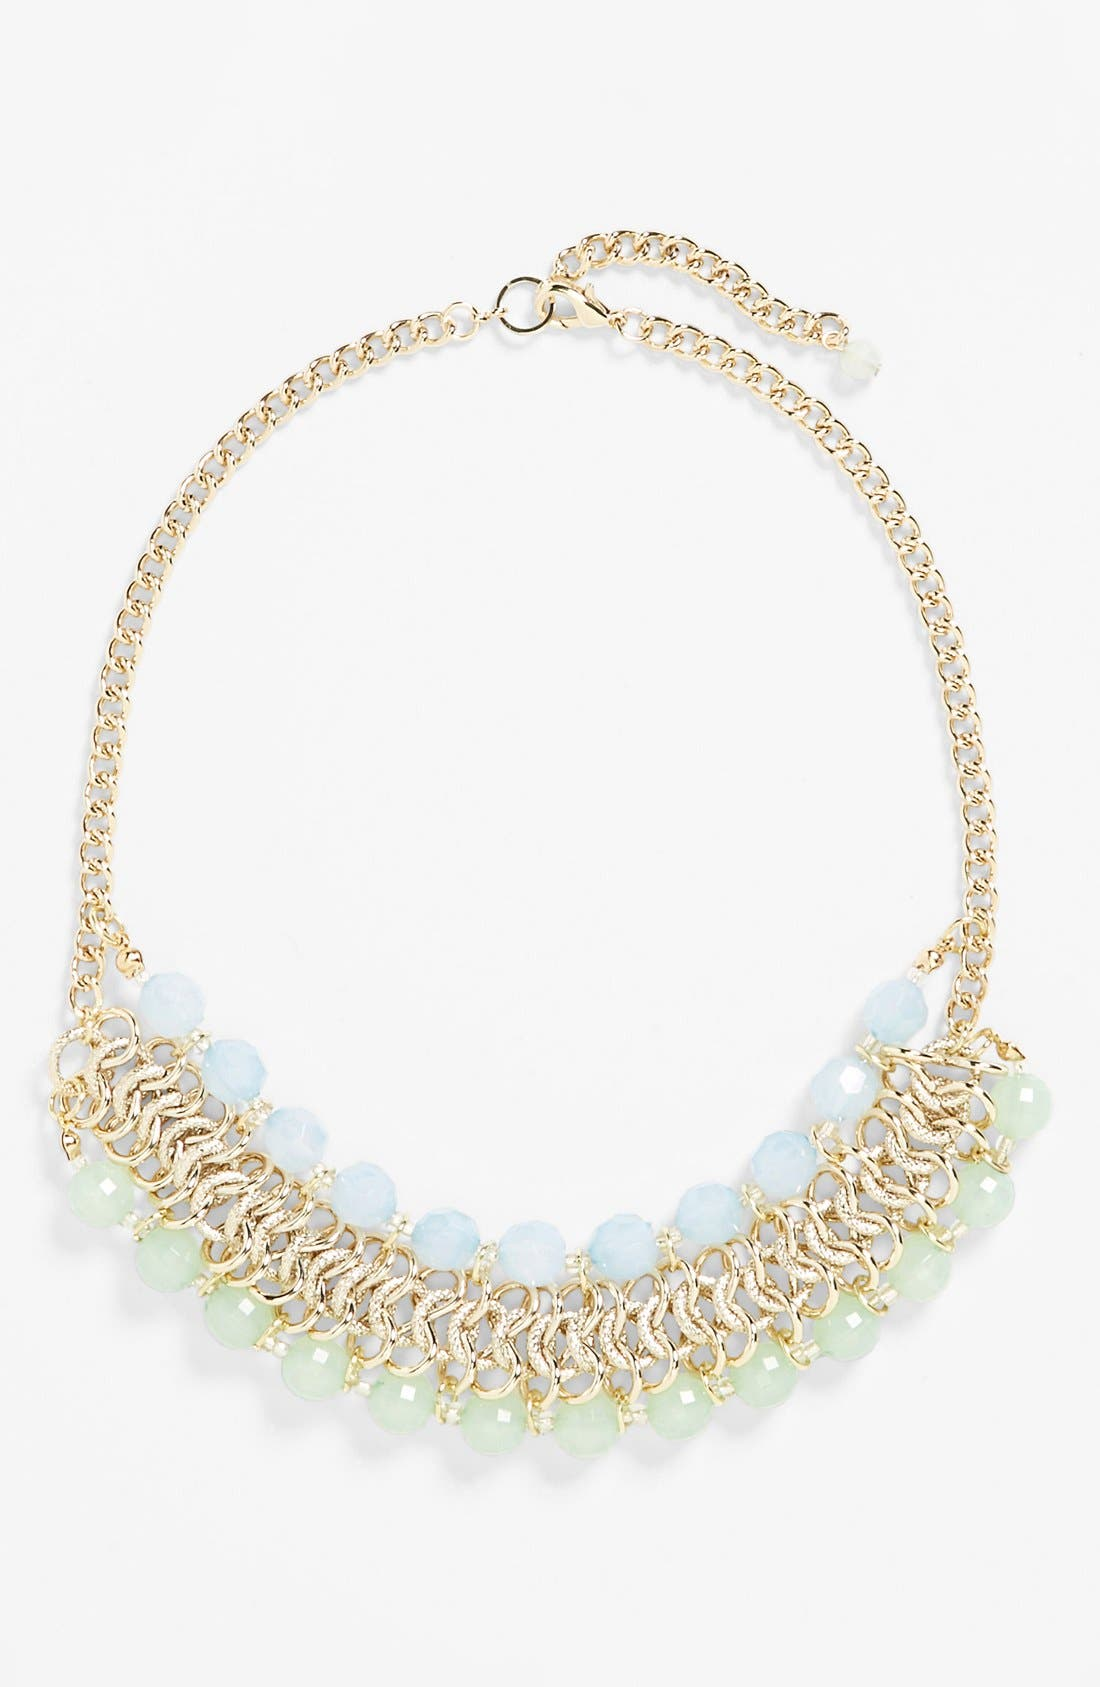 Alternate Image 1 Selected - Rachel Beaded Chain Frontal Necklace (Juniors)